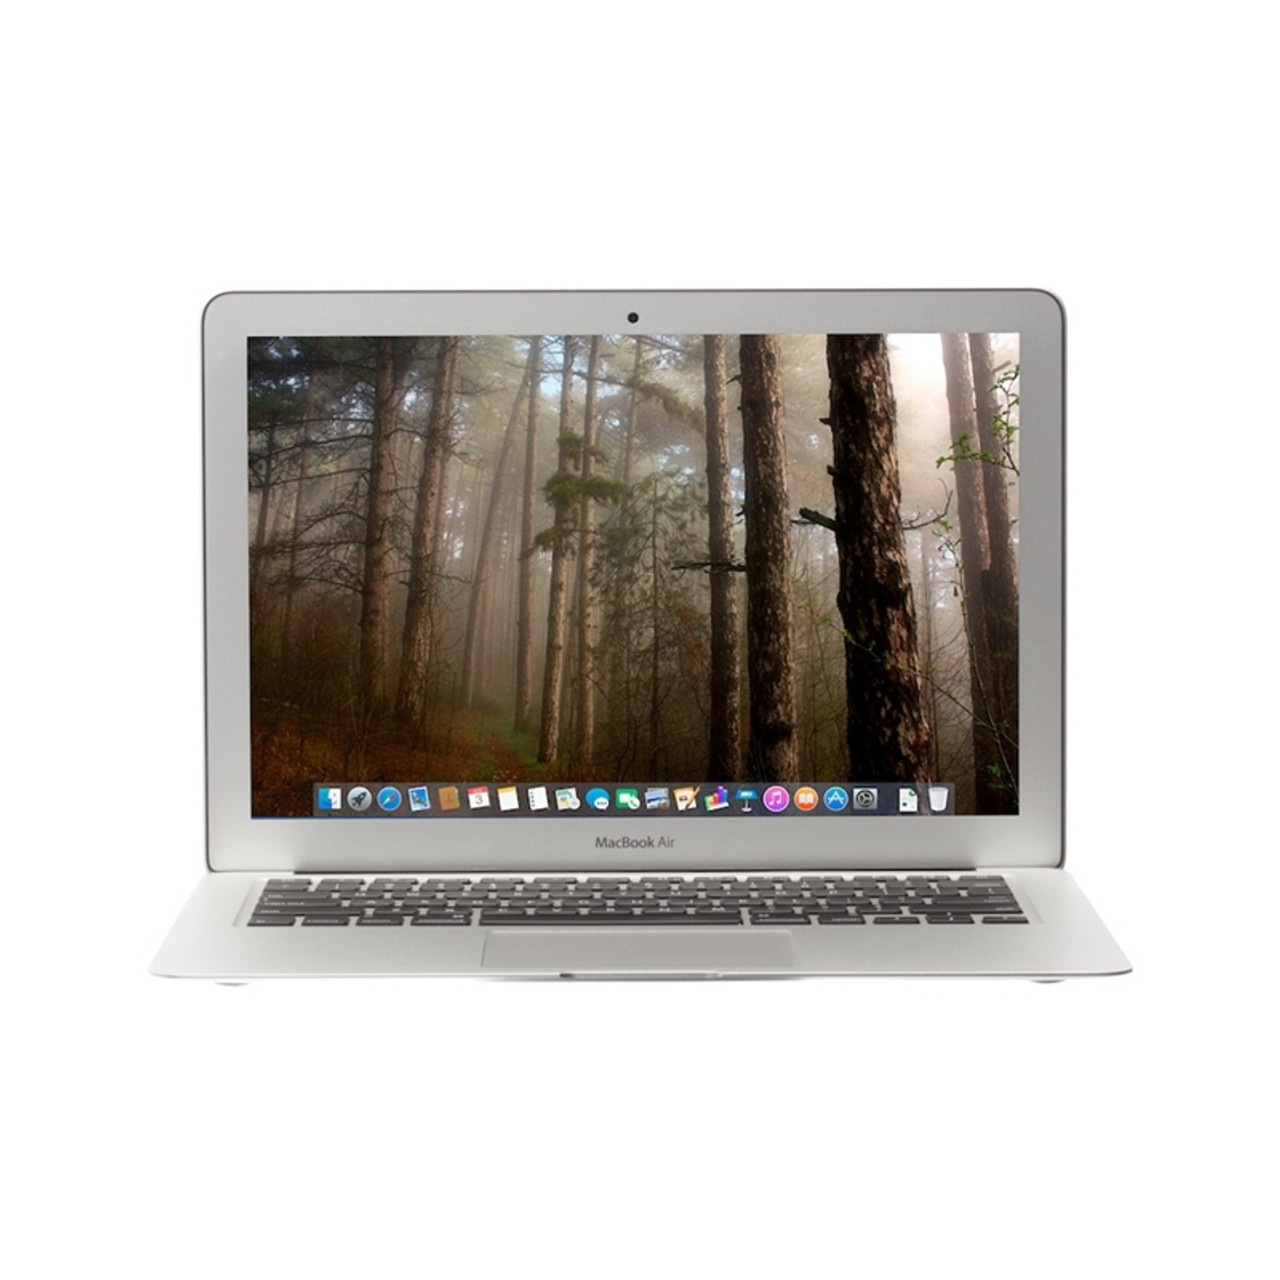 Macbook Air 13 1 4ghz Early 2014 Mac Of All Trades